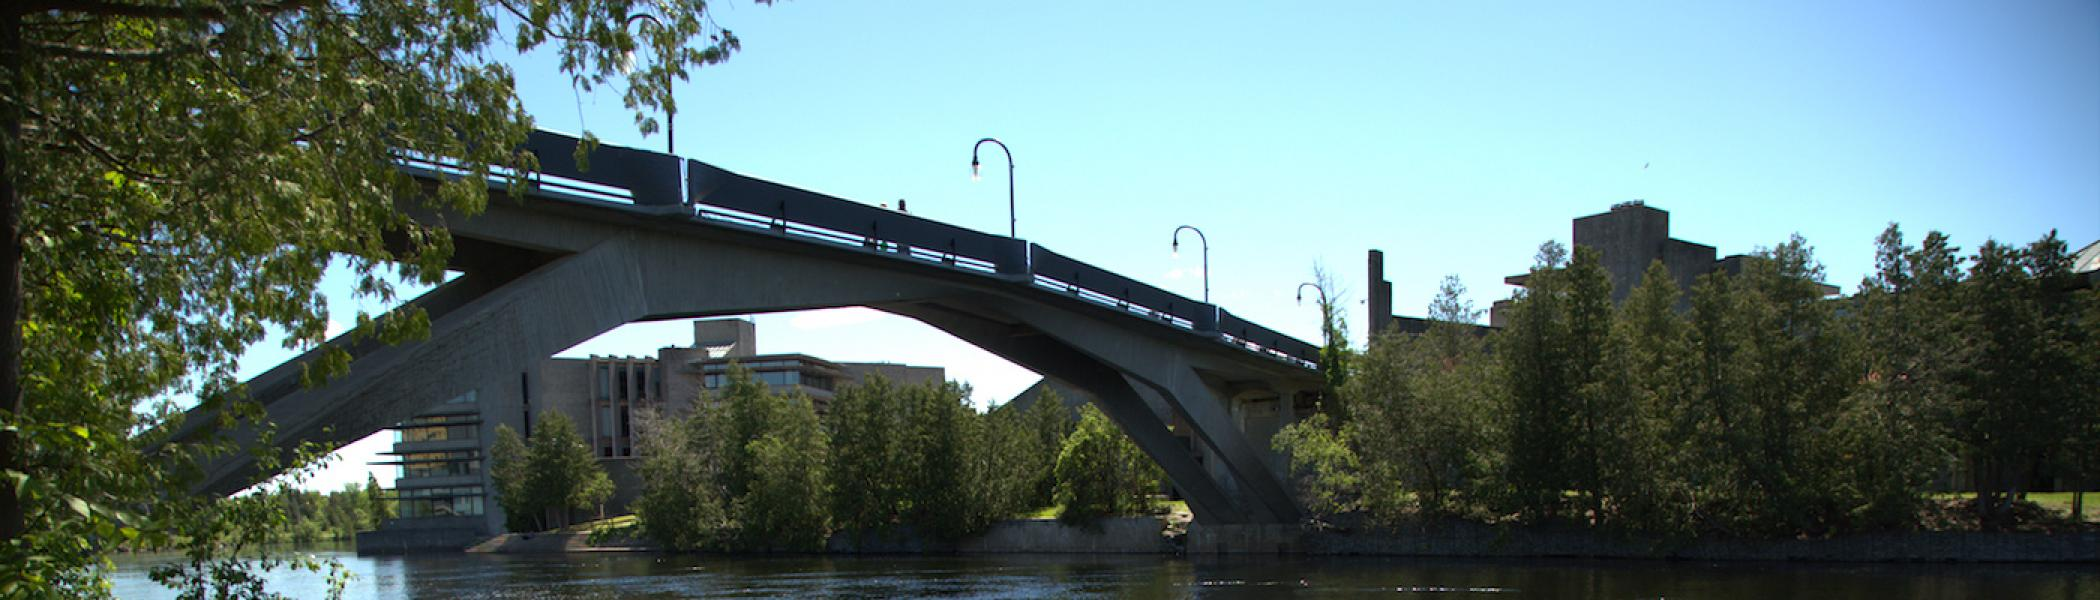 Trent University Fayron Bridge from a distance